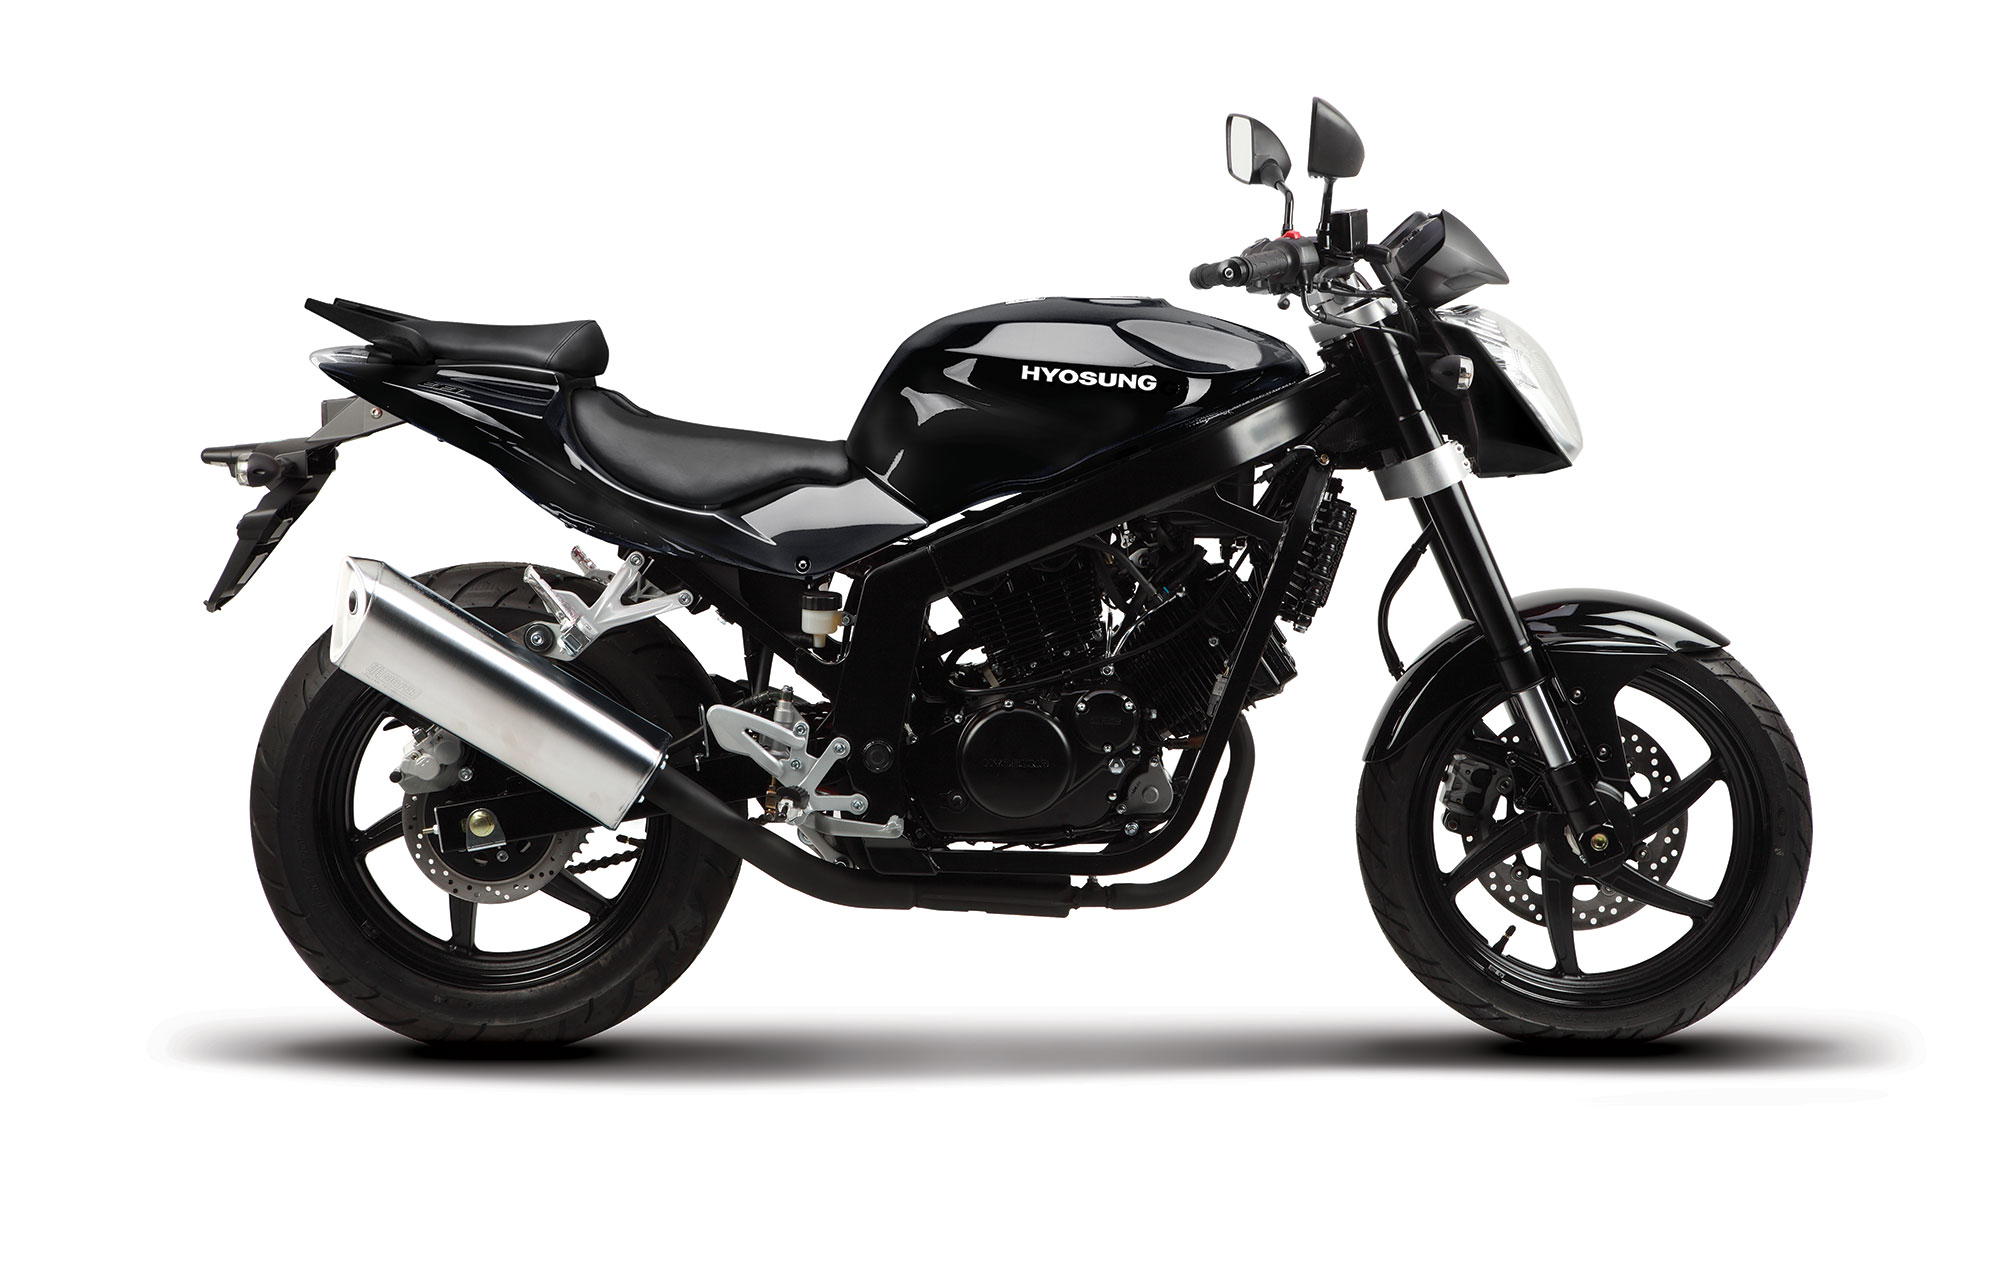 2015 Hyosung Gt250 Review